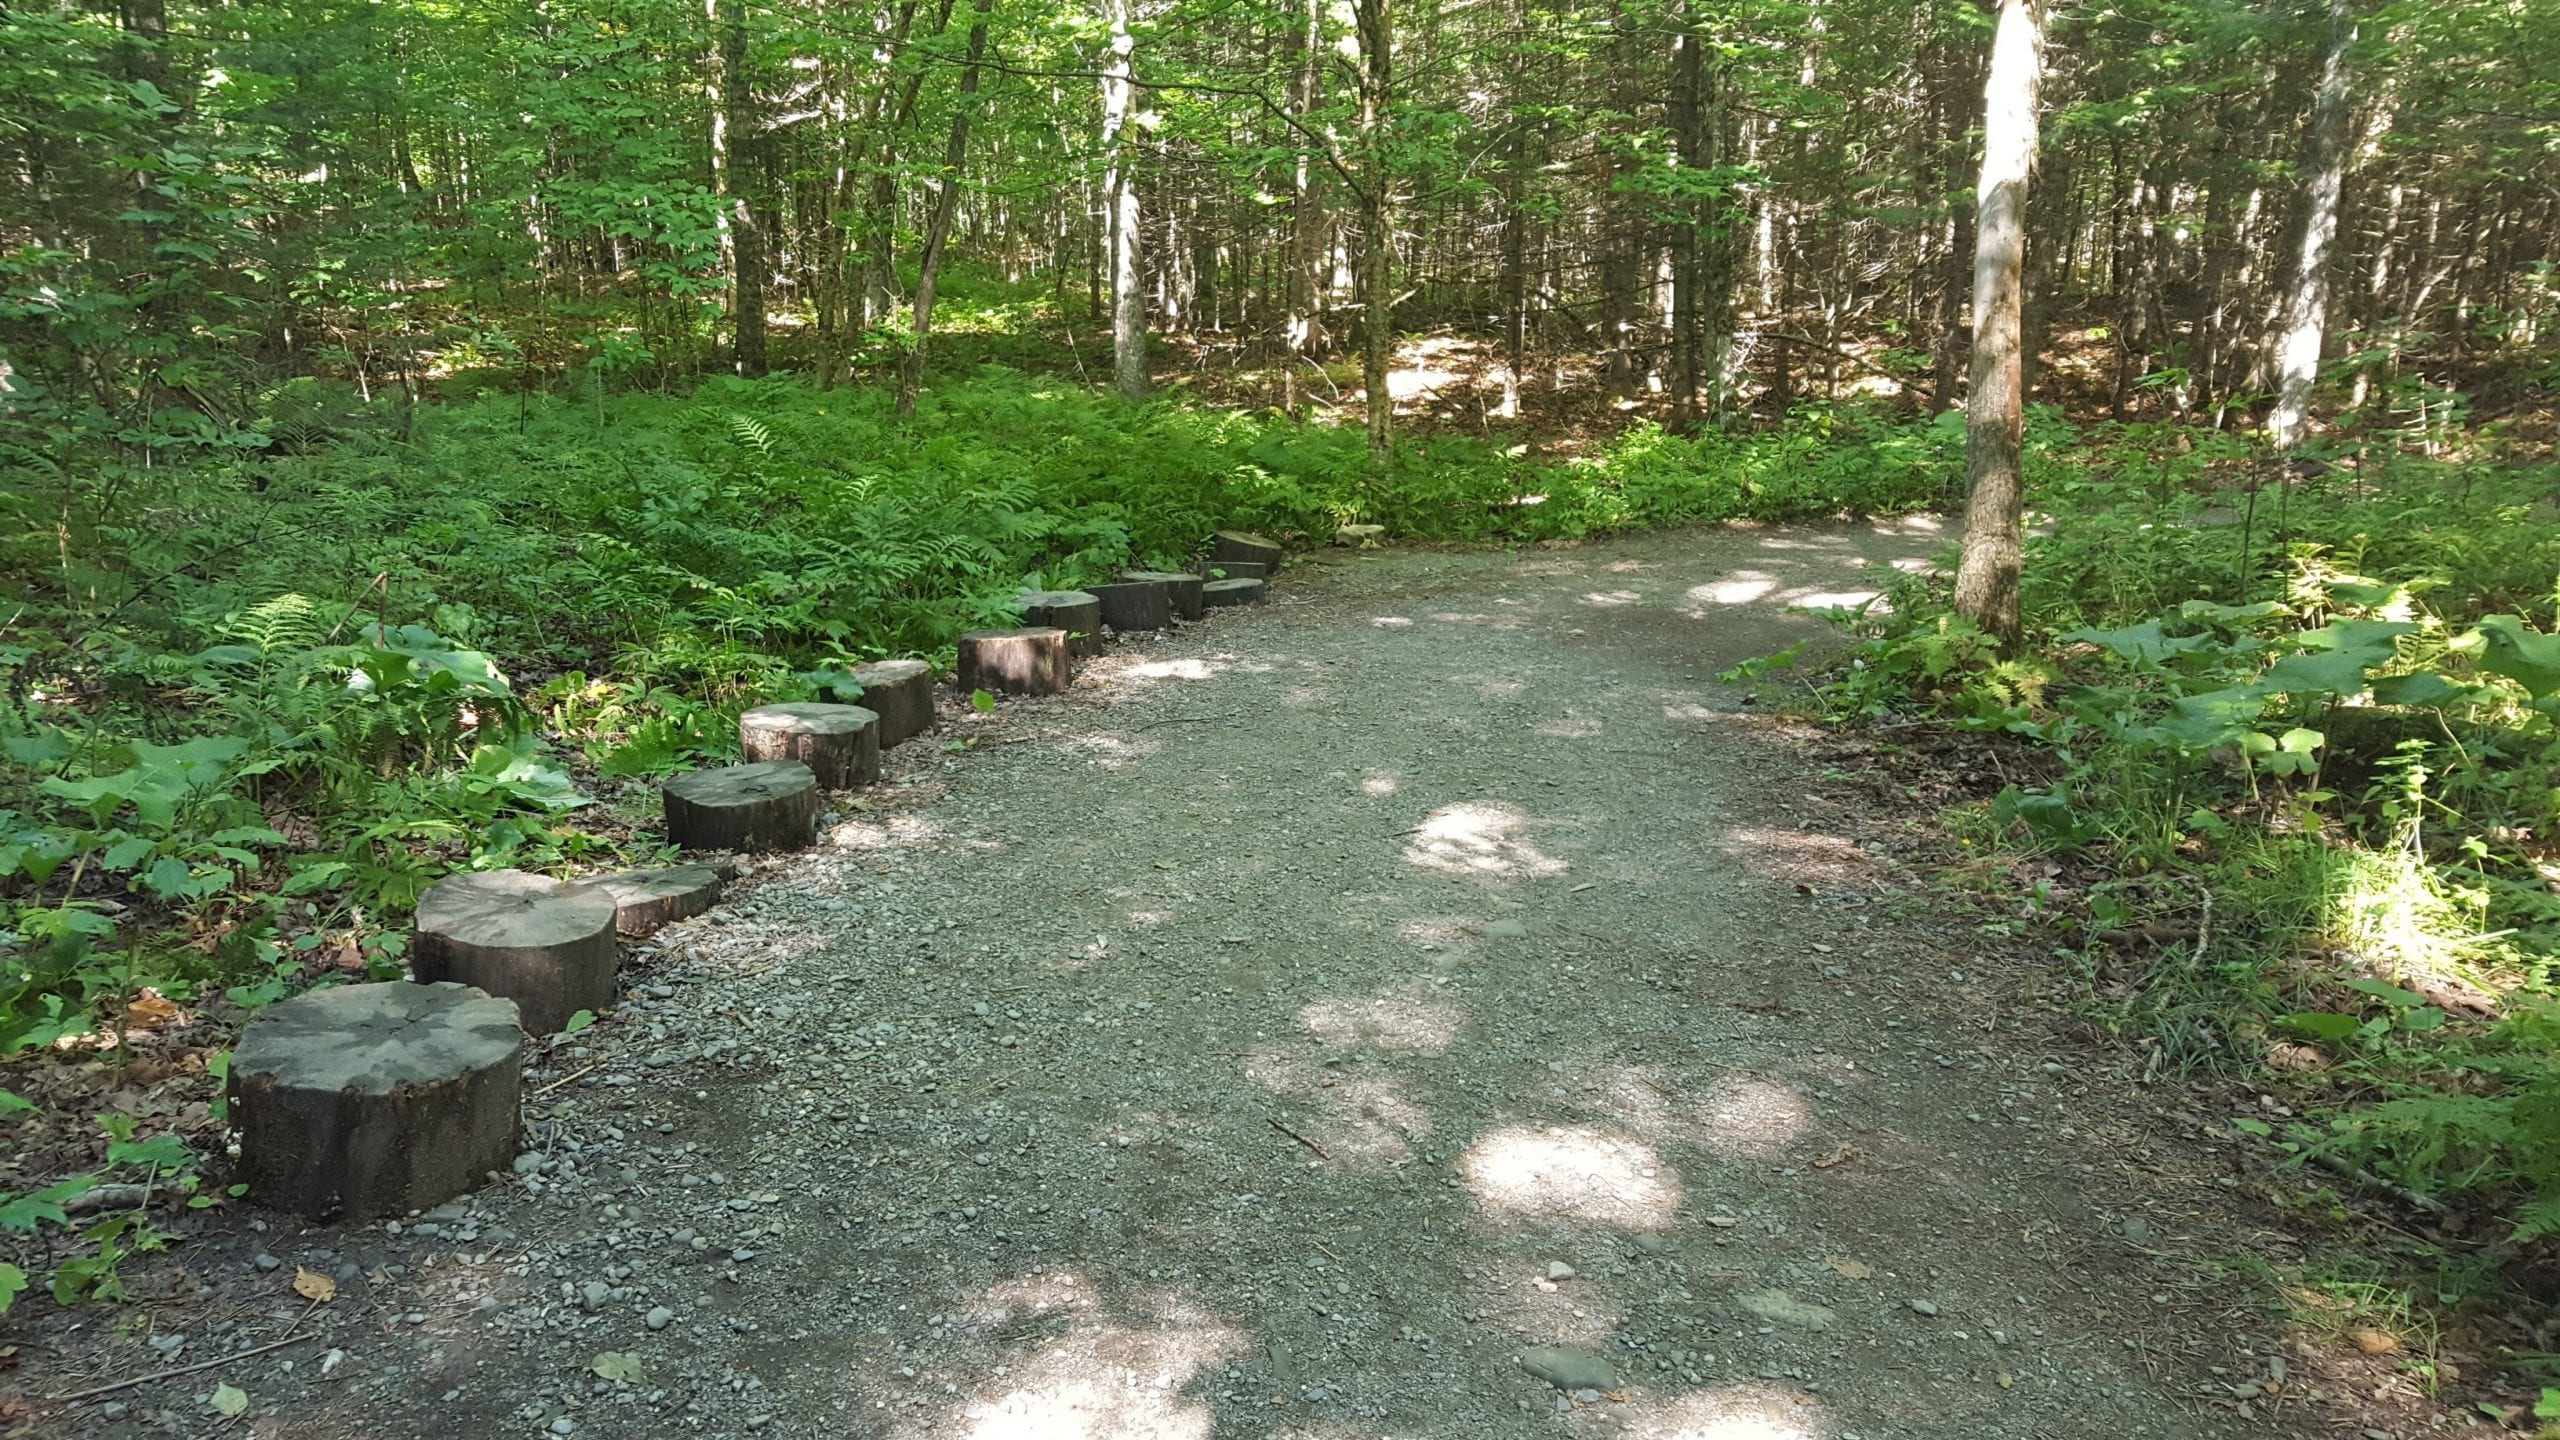 This is what a majority of the trail looks like on the way to Moxie Falls. Wide, flat, and well-maintained.